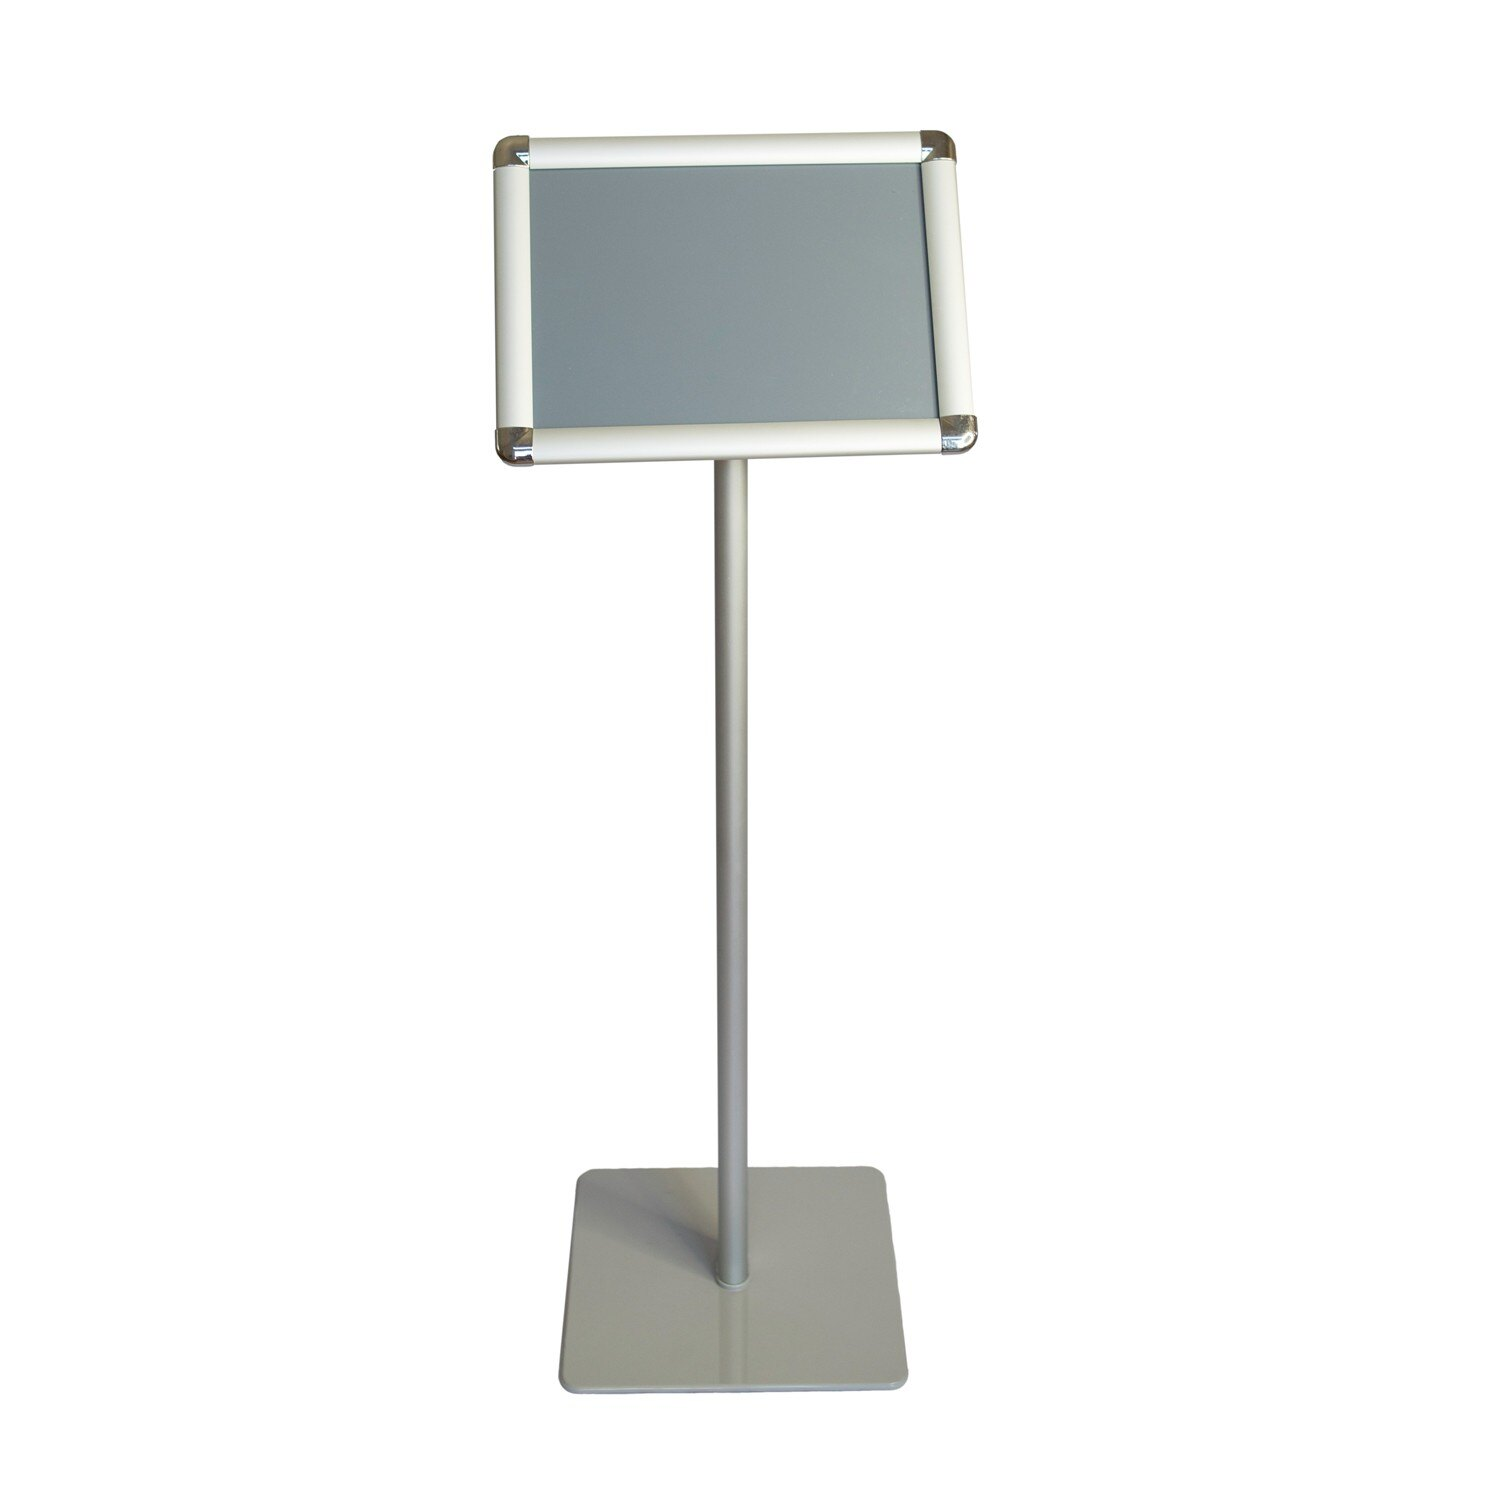 Offex A3 Size Paper Pedestal Floor Display Poster Sign Holder Stand 0